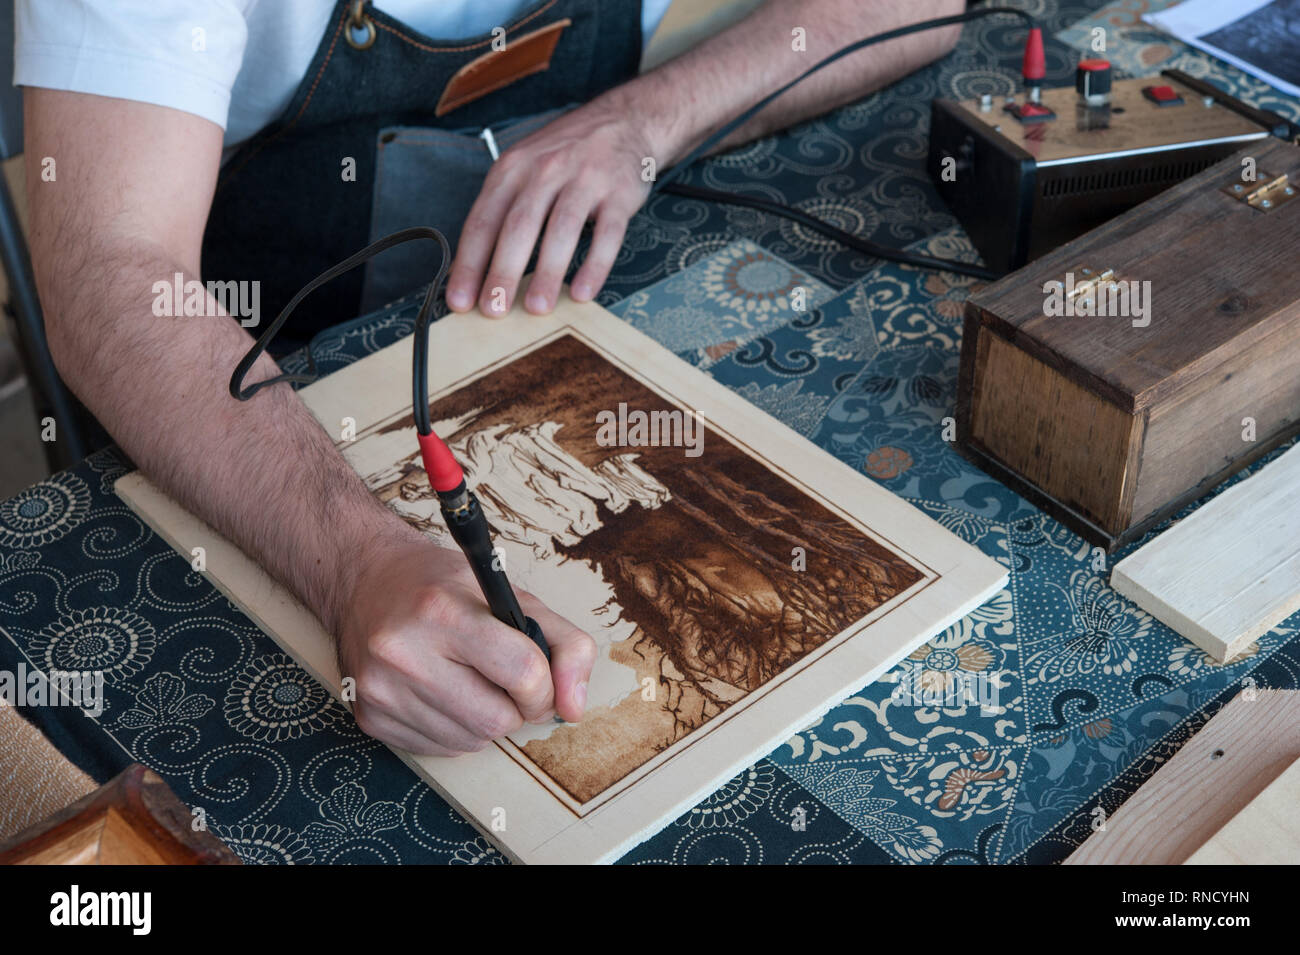 The Pyrography is an engraving technique by means of a heat source, on wood, leather, cork and other materials - Stock Image